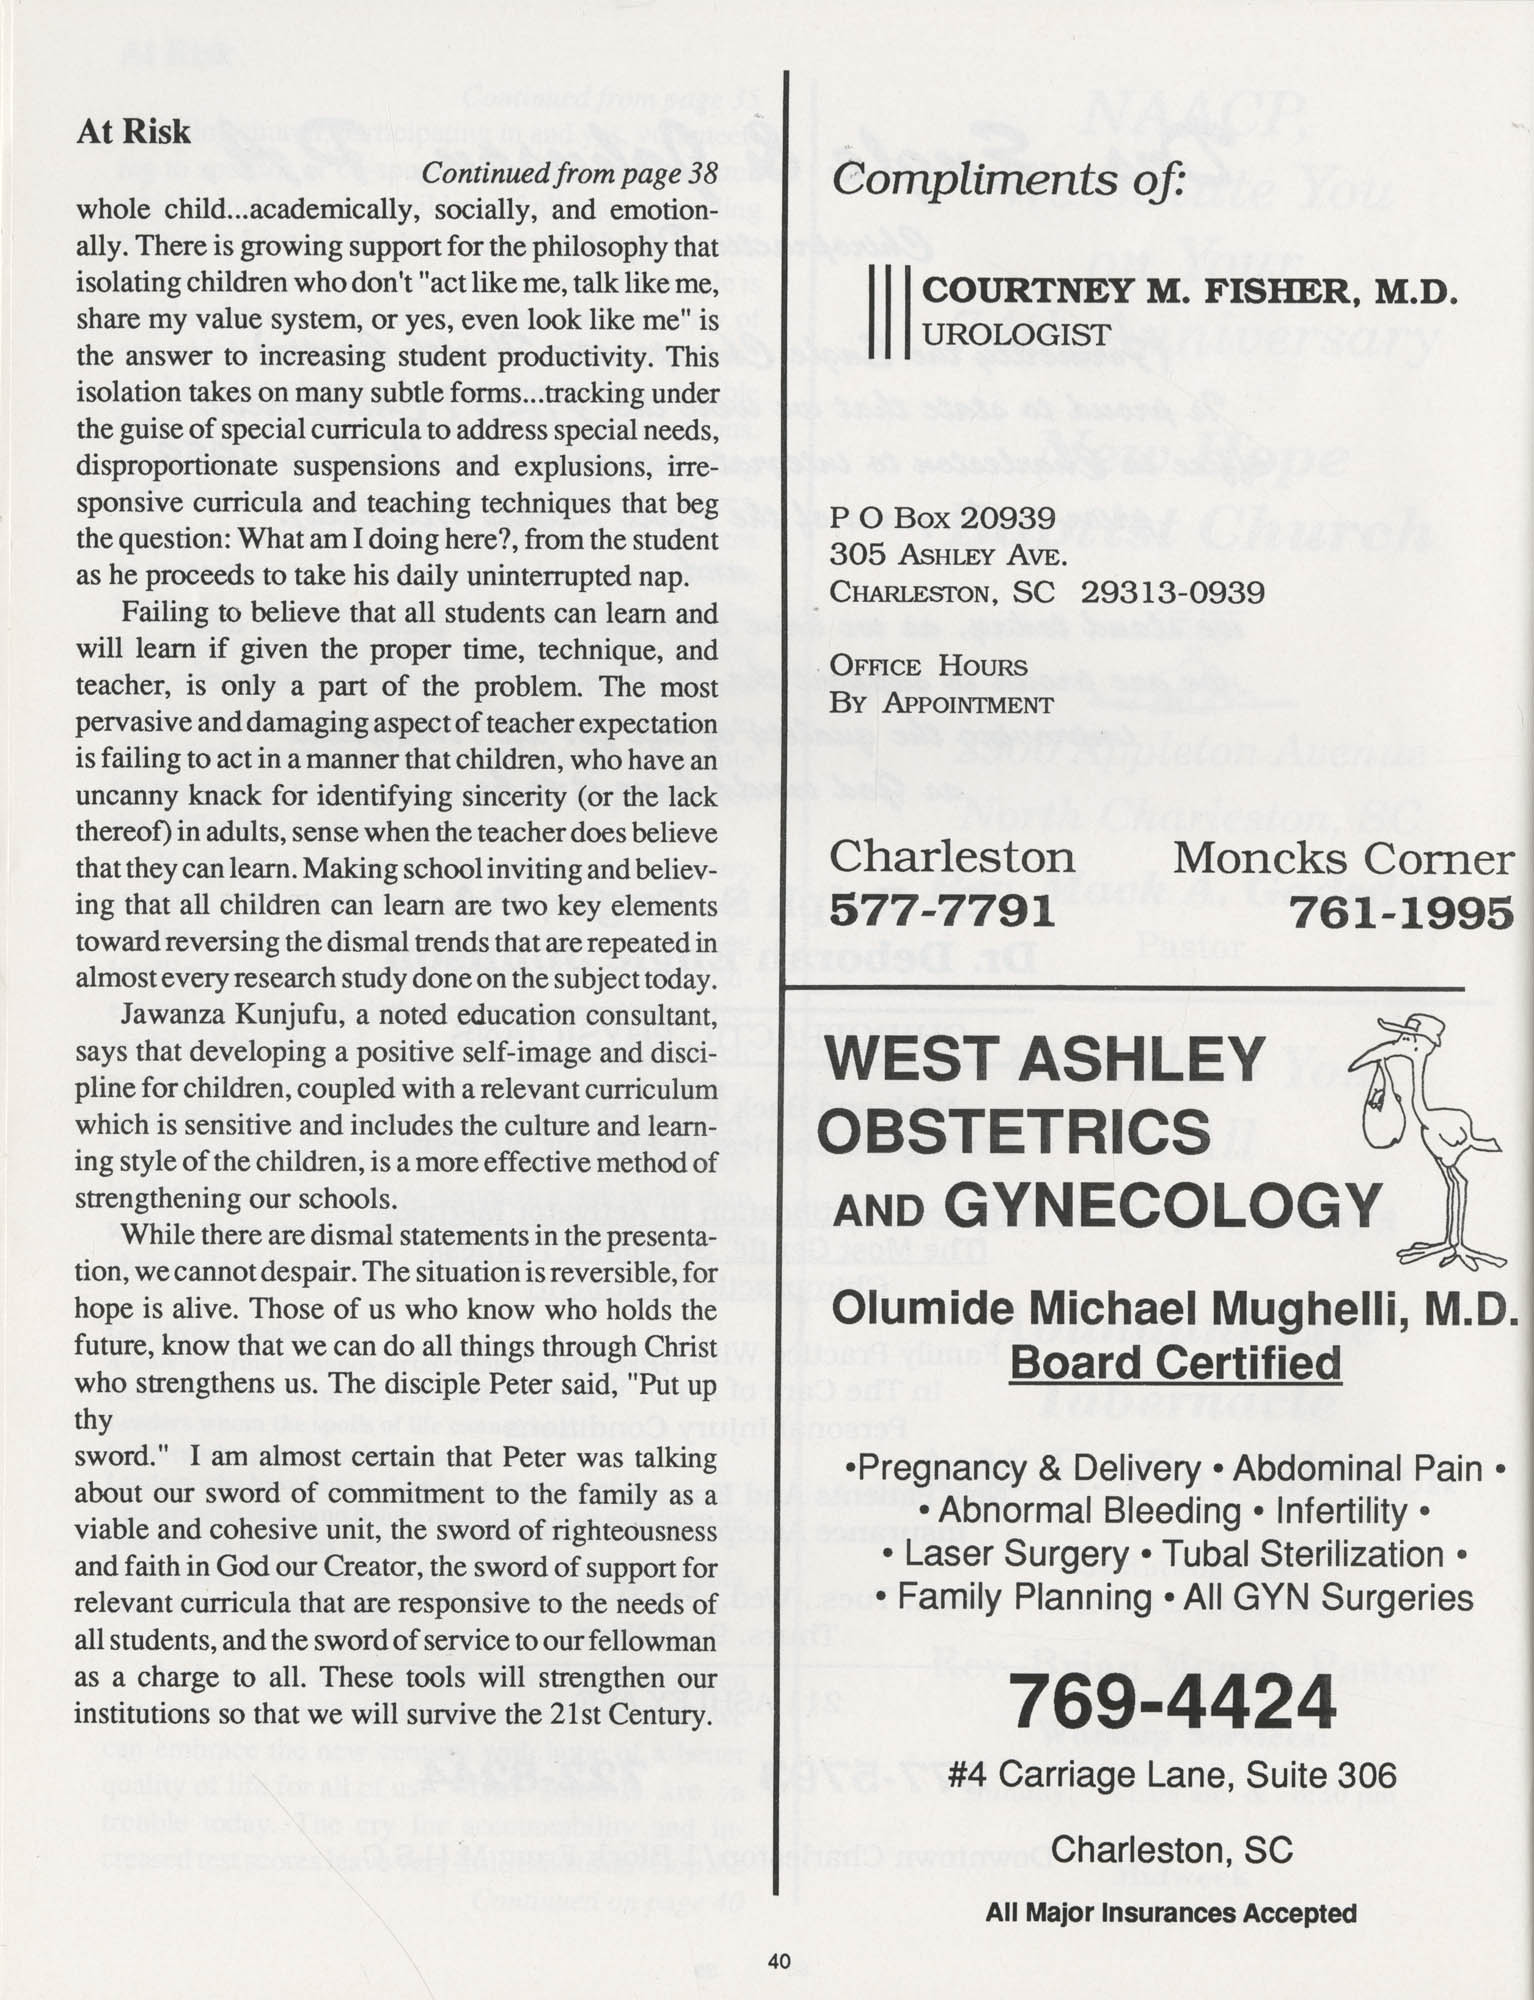 1990 NAACP Freedom Fund Magazine, Charleston Branch of the NAACP, 74th Anniversary, Page 40